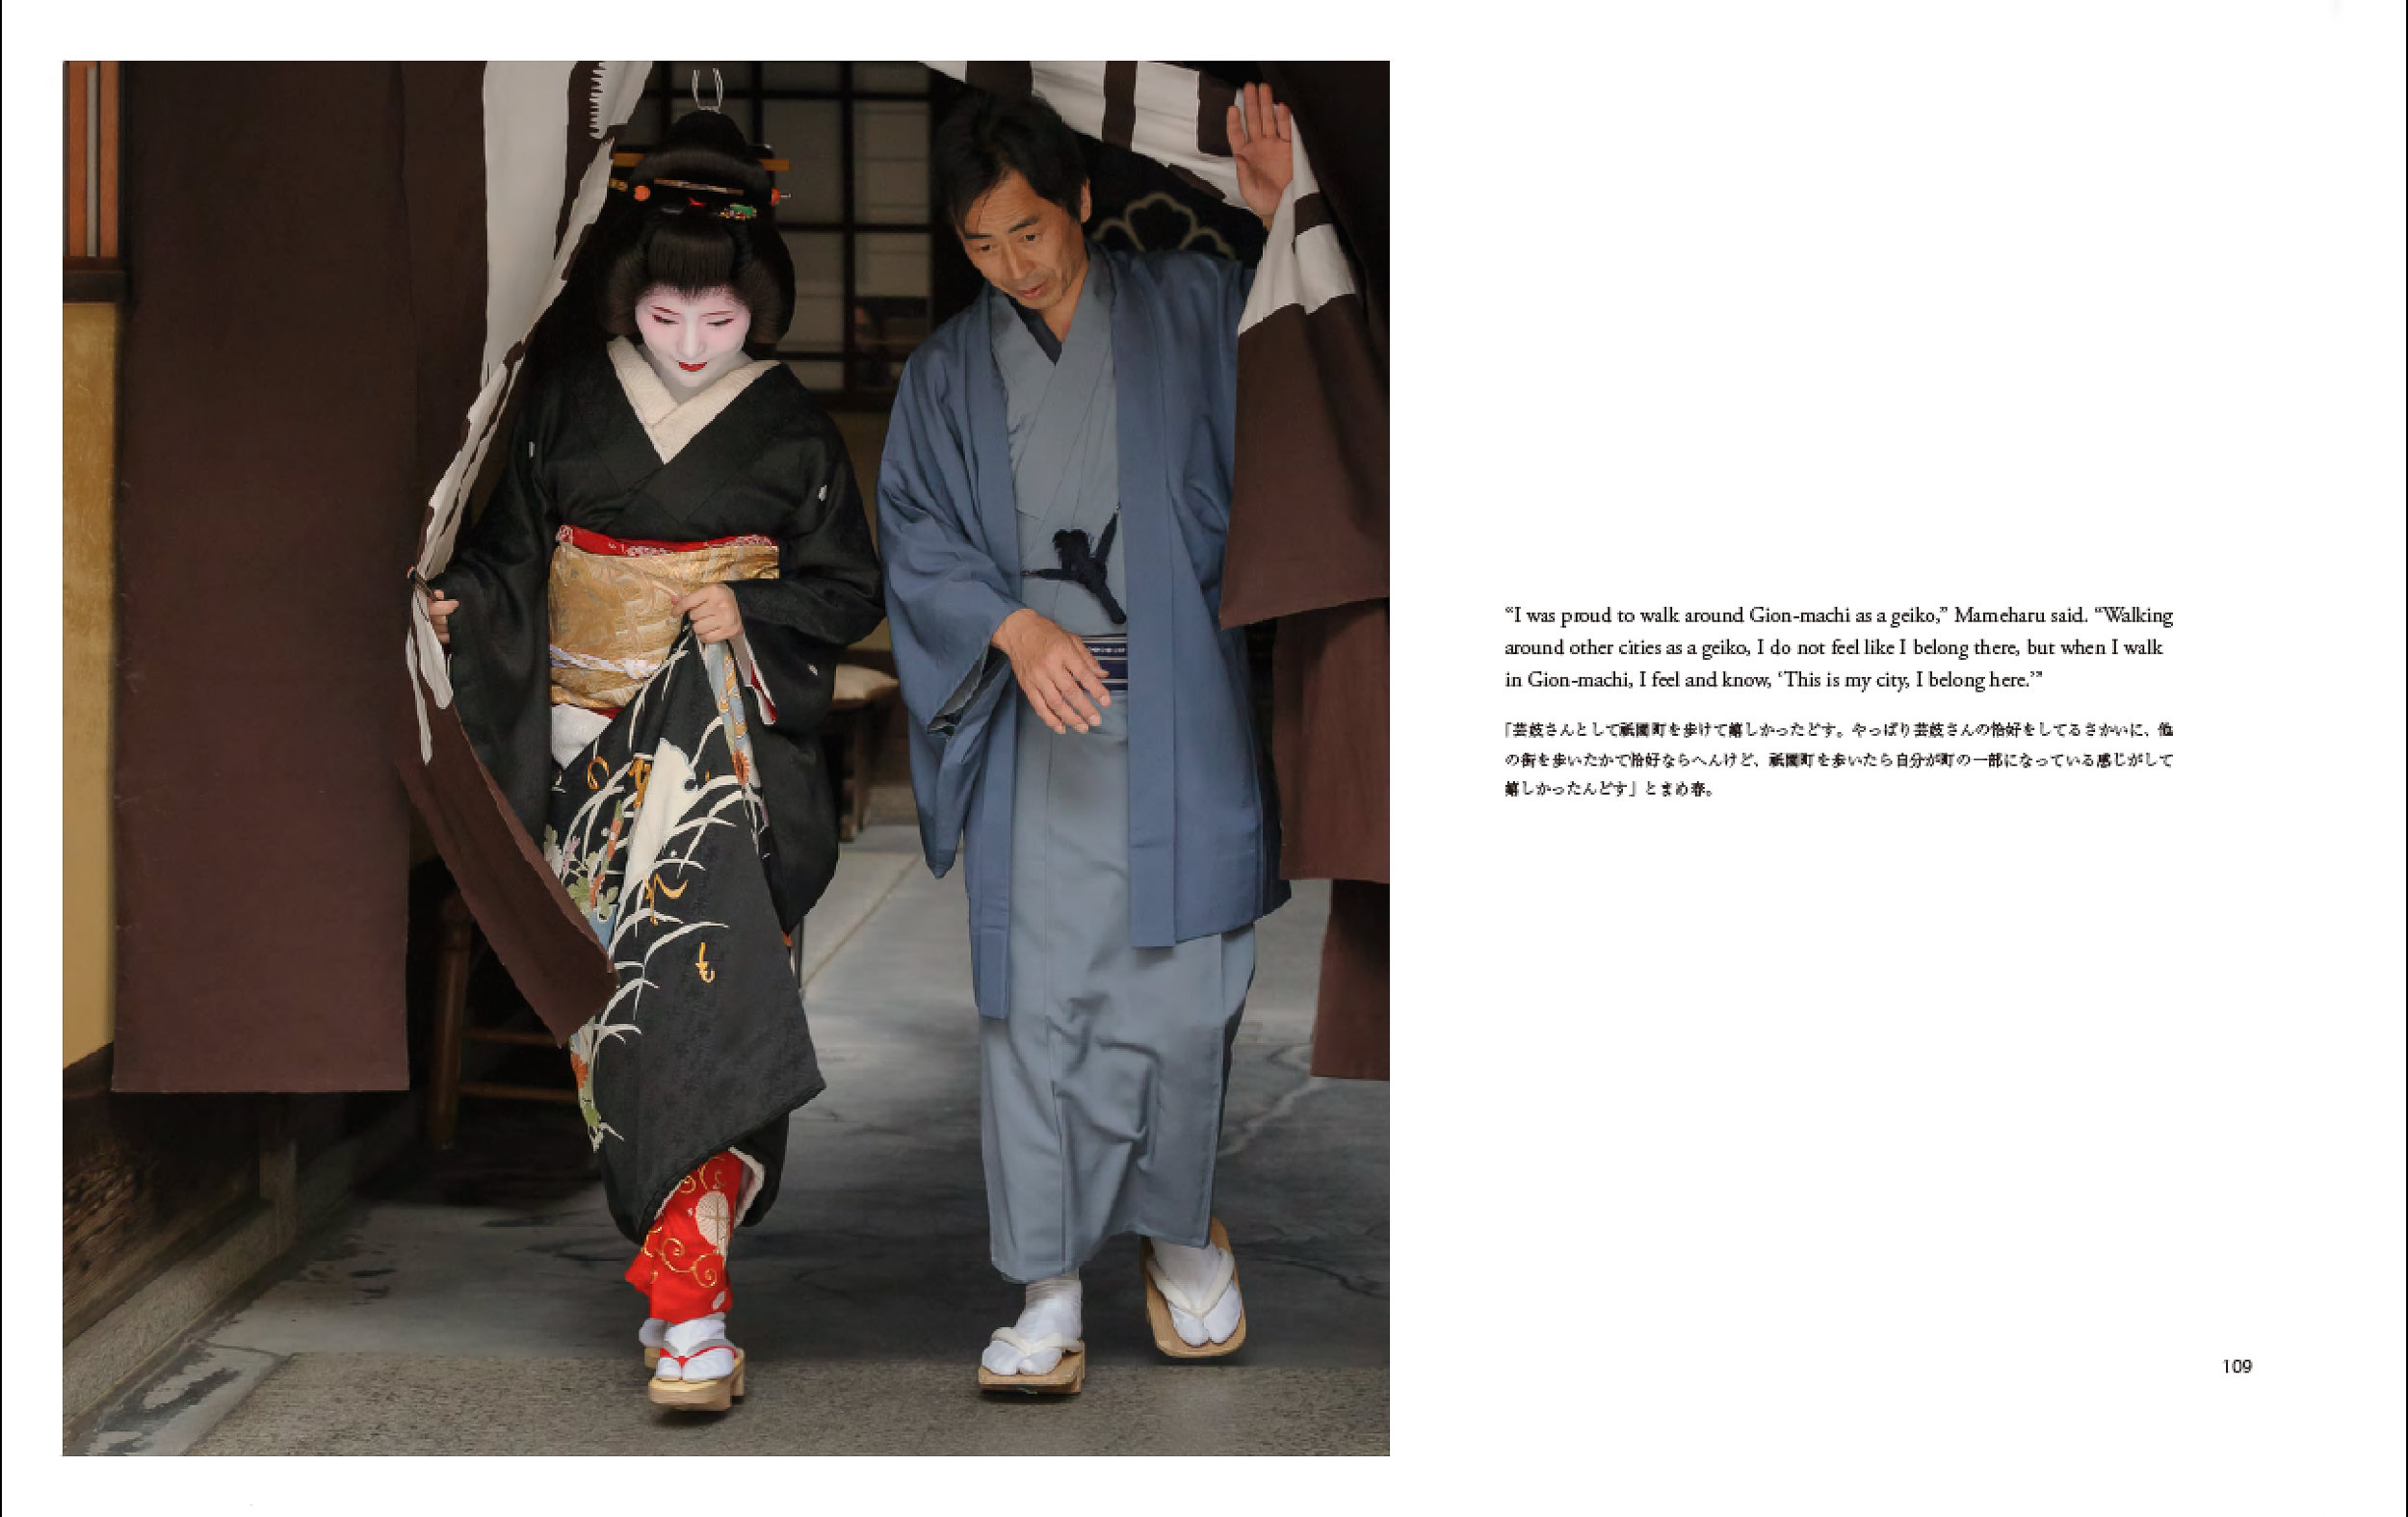 Now-a-Geisha-pages-108-9.jpg